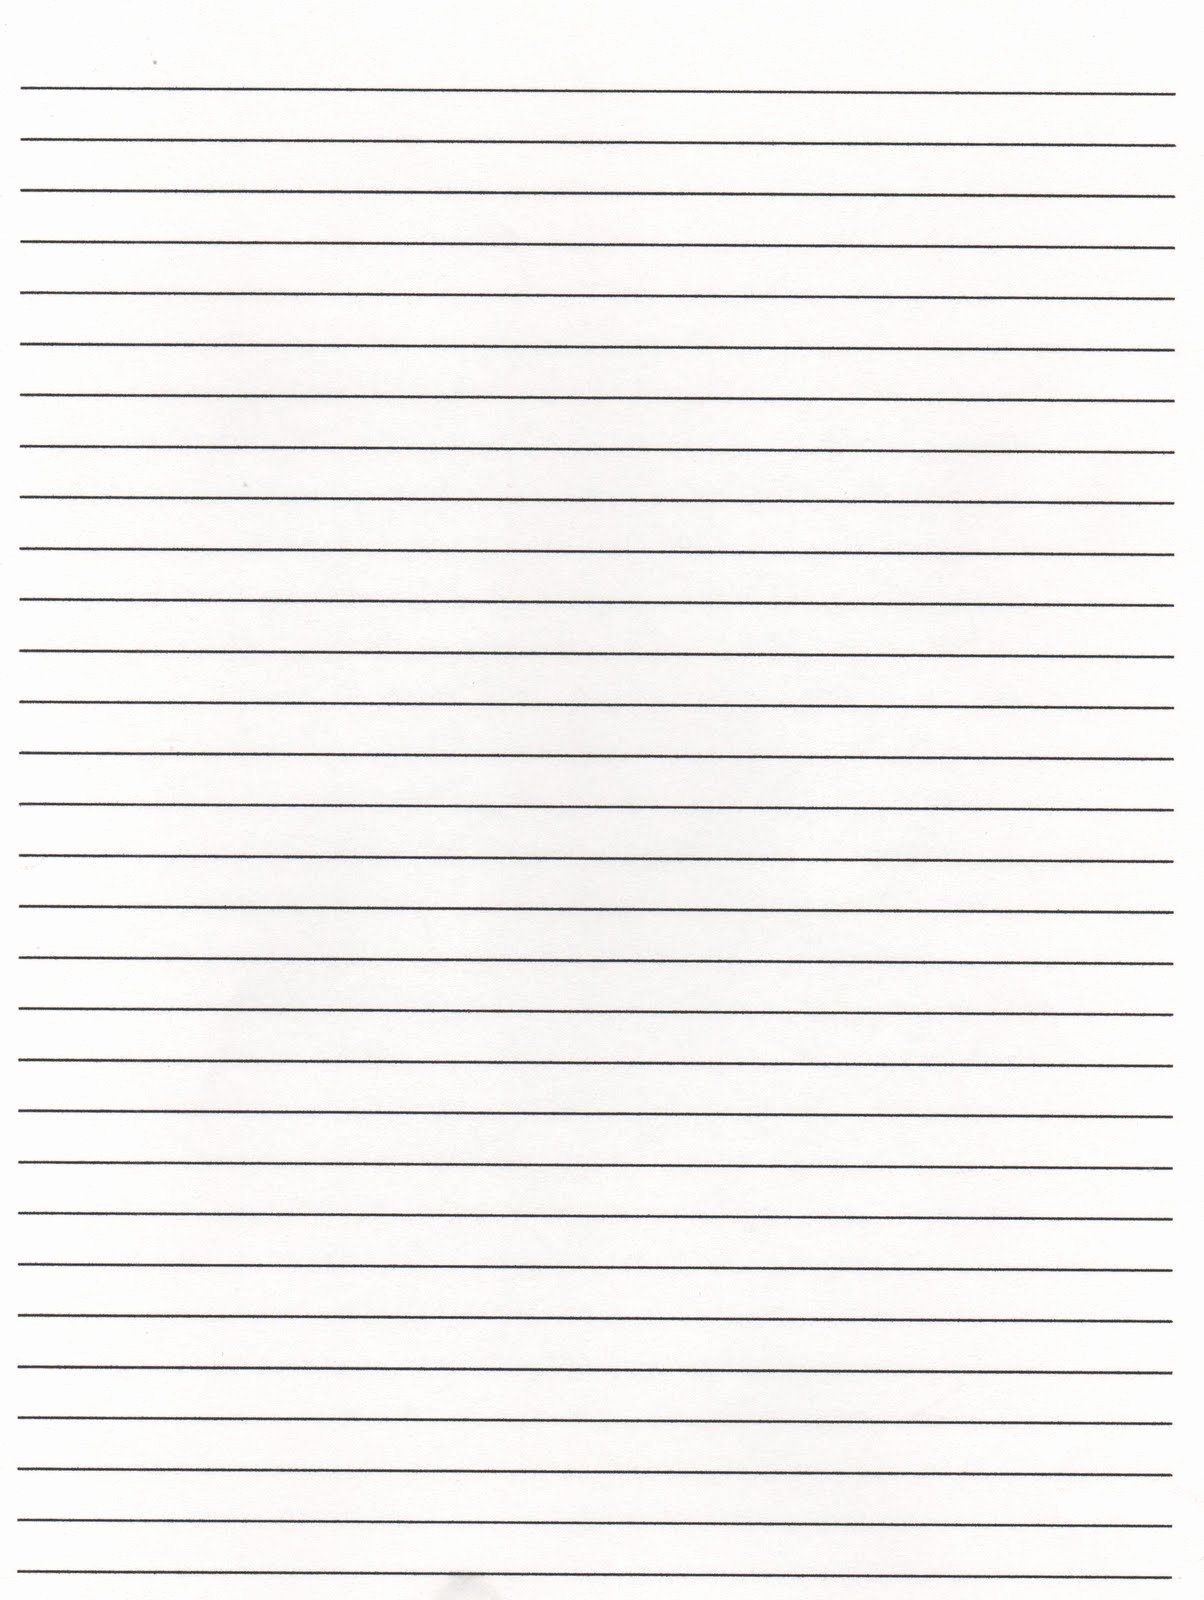 Picture Of Lined Paper Fresh Elementary School Enrichment Activities Lined Paper